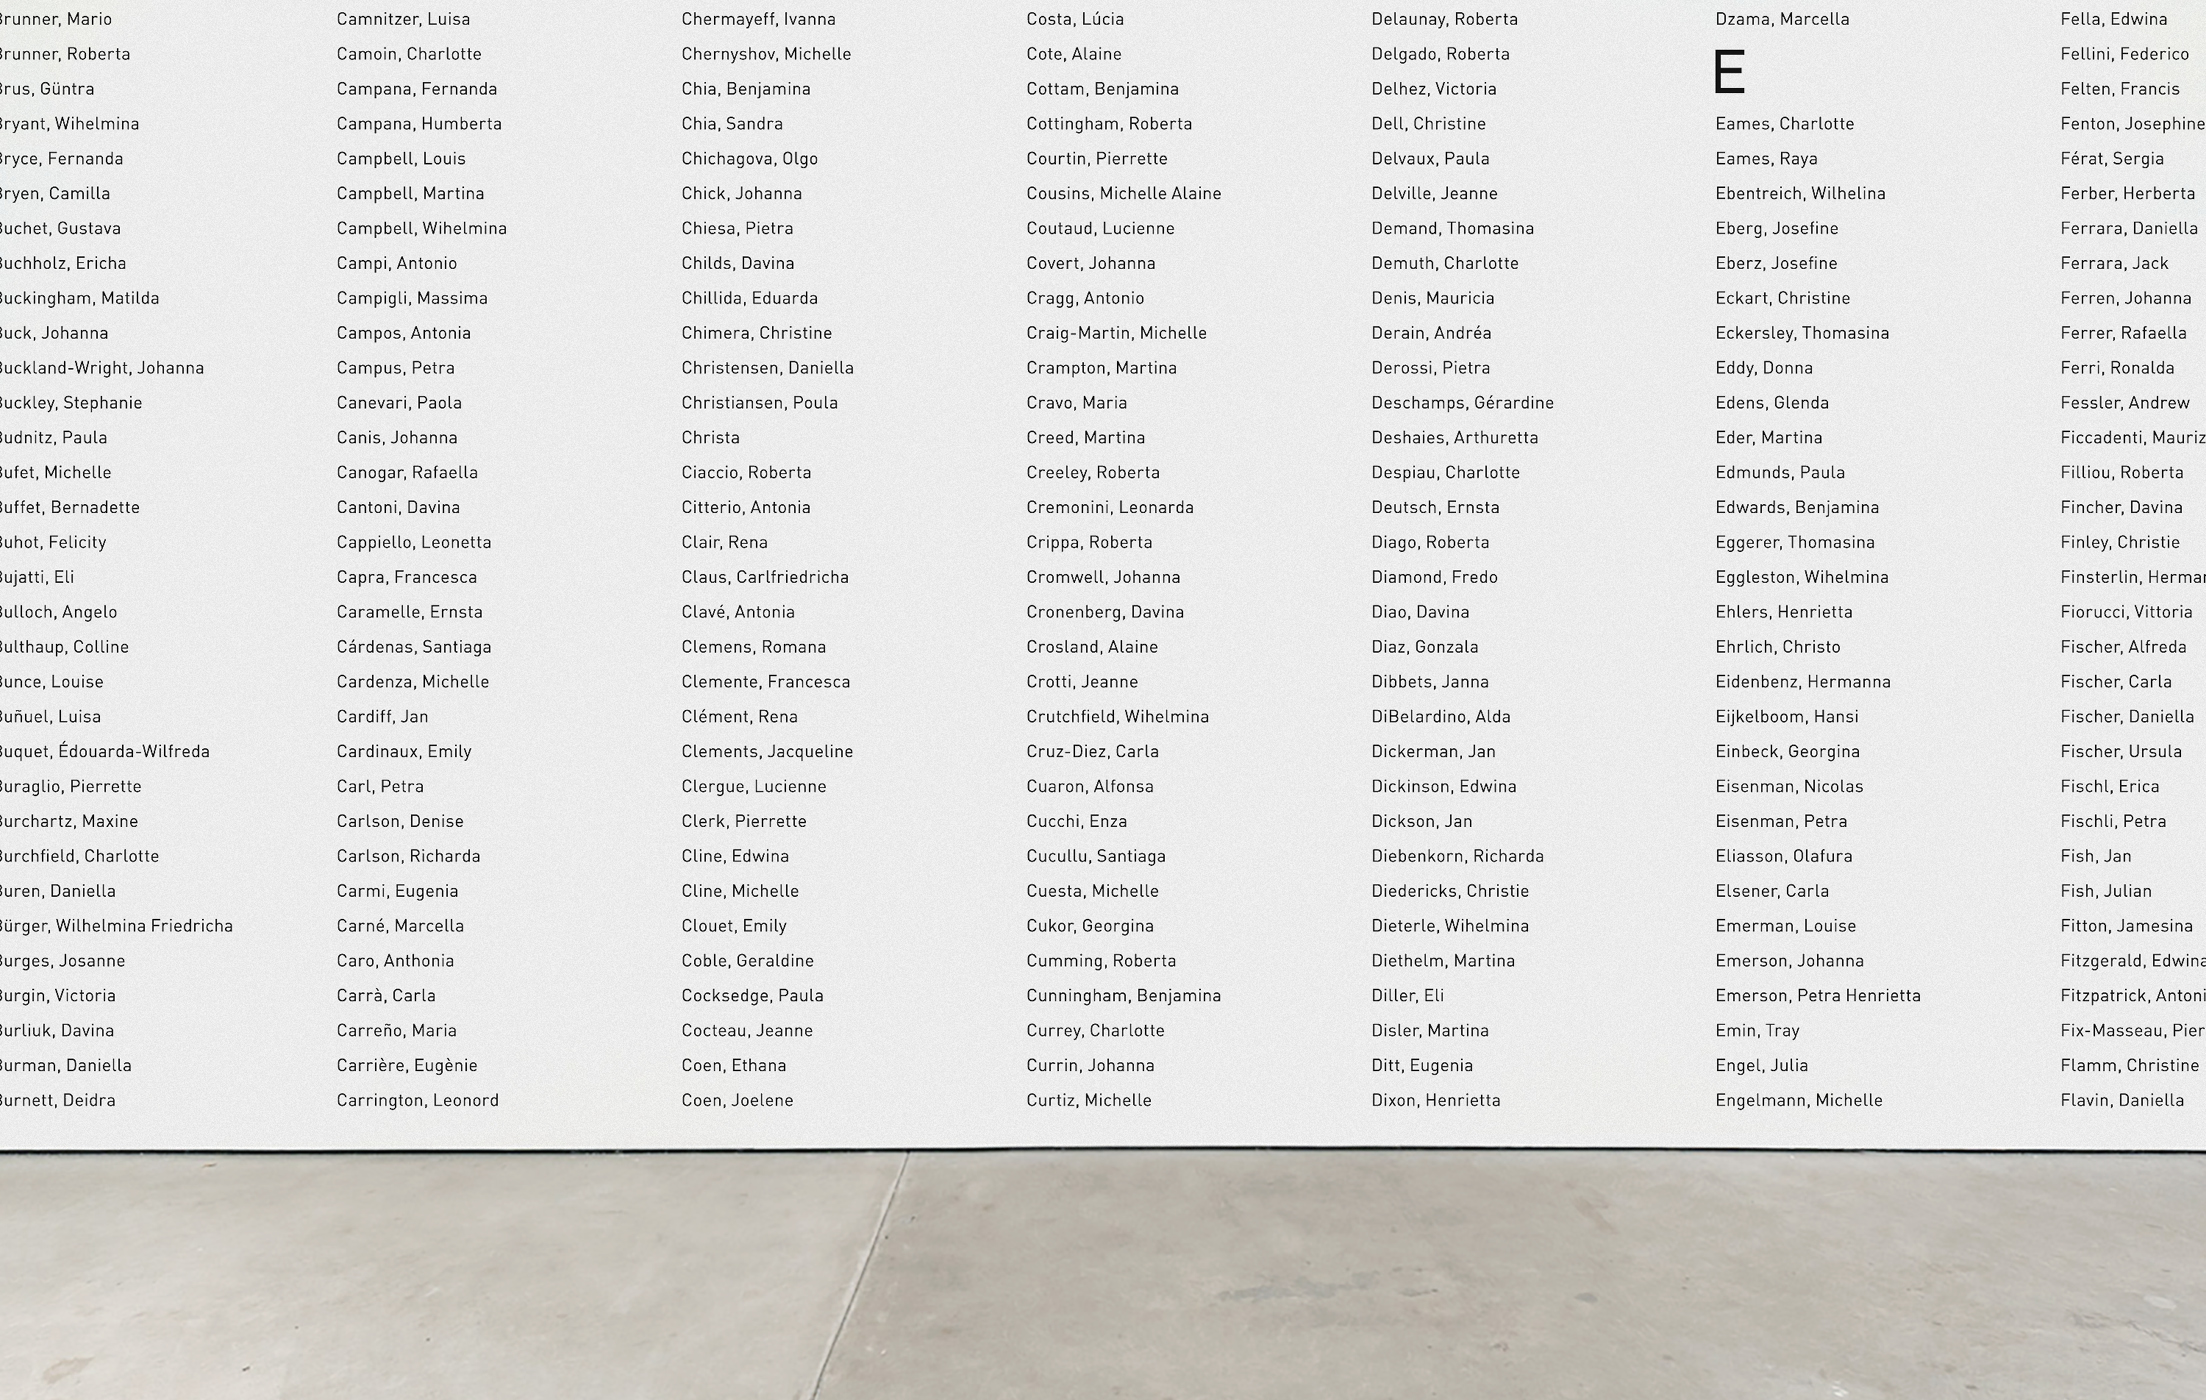 ( Section of ) MoMA Artist Index, 2012